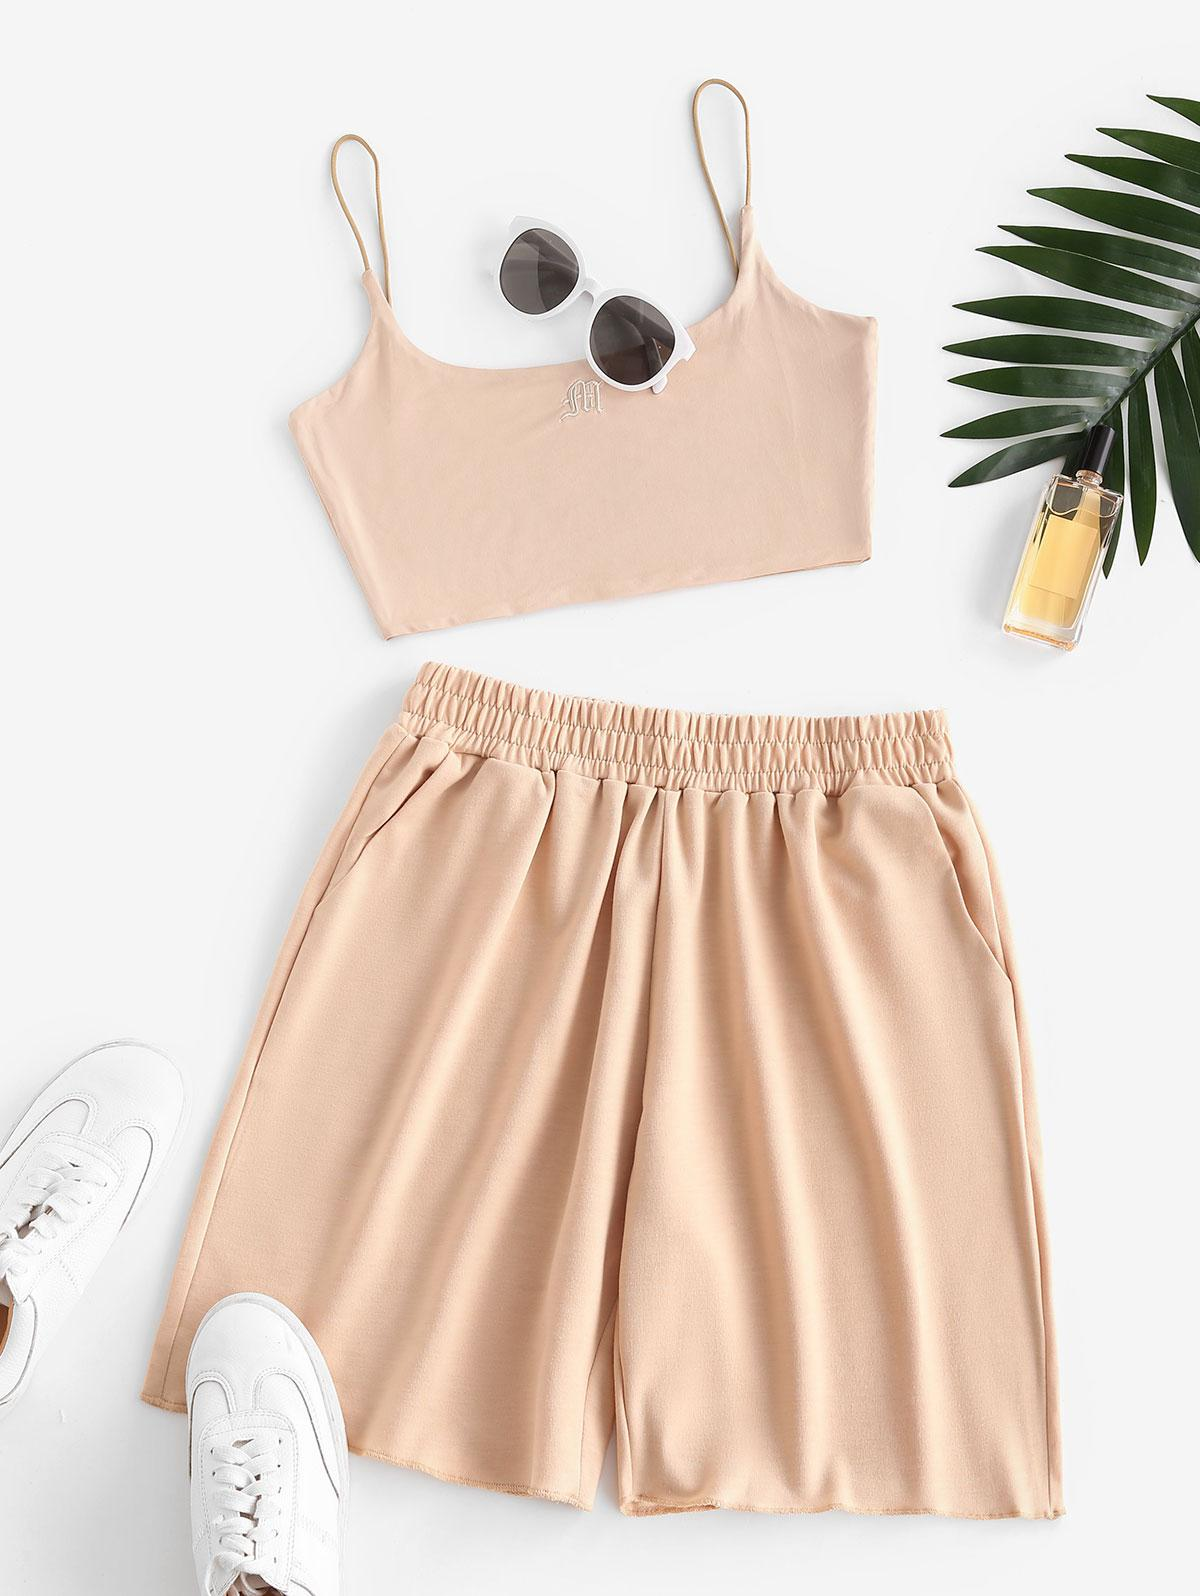 Sweat Bungee Strap Embroidered Two Piece Shorts Set